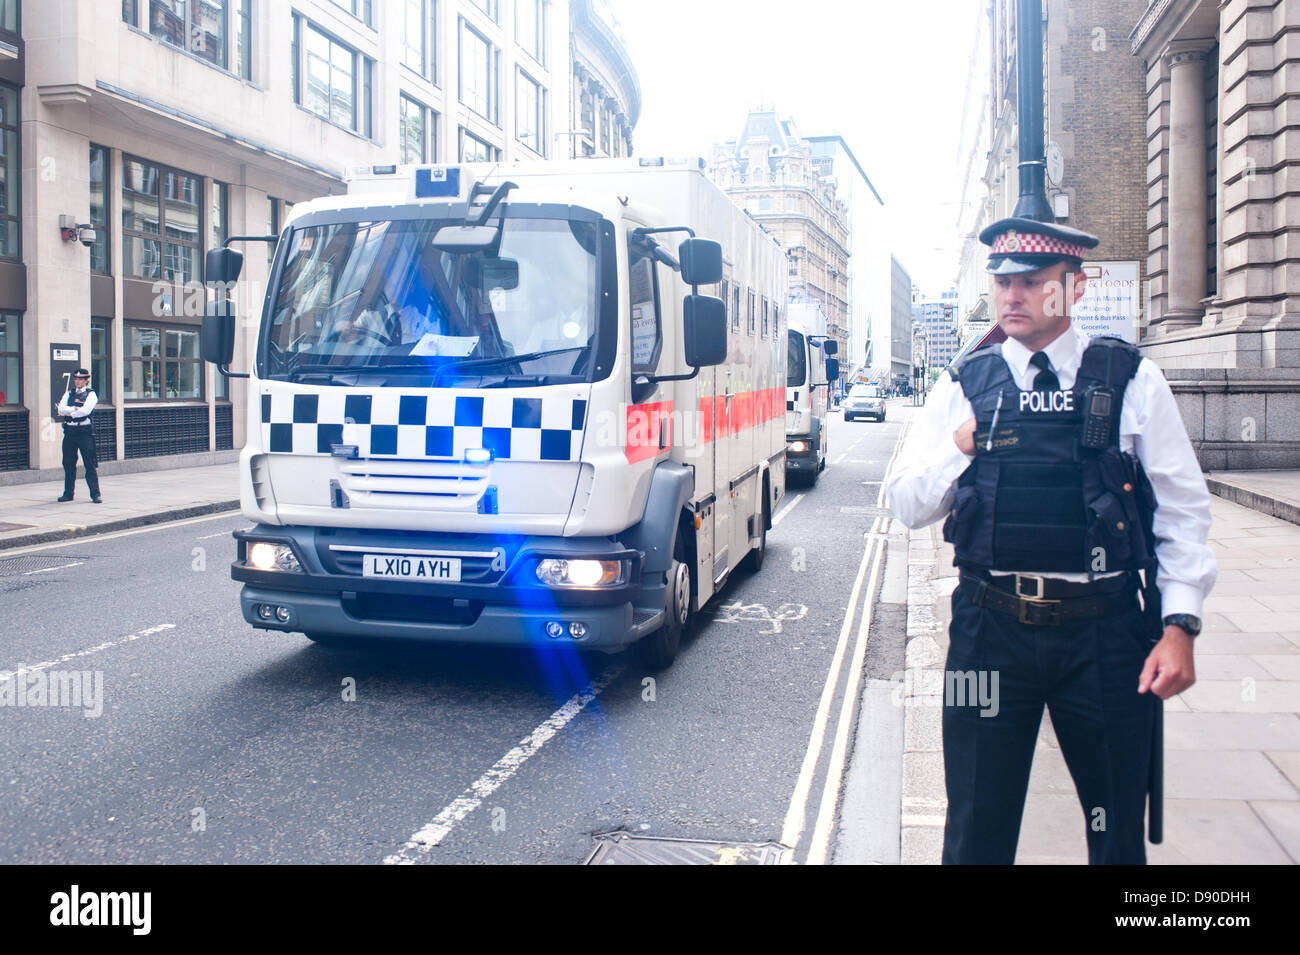 London, UK - 7 June 2013: Police vans believed to be carrying six Islamic extremists pleaded guilty to planning - Stock Image